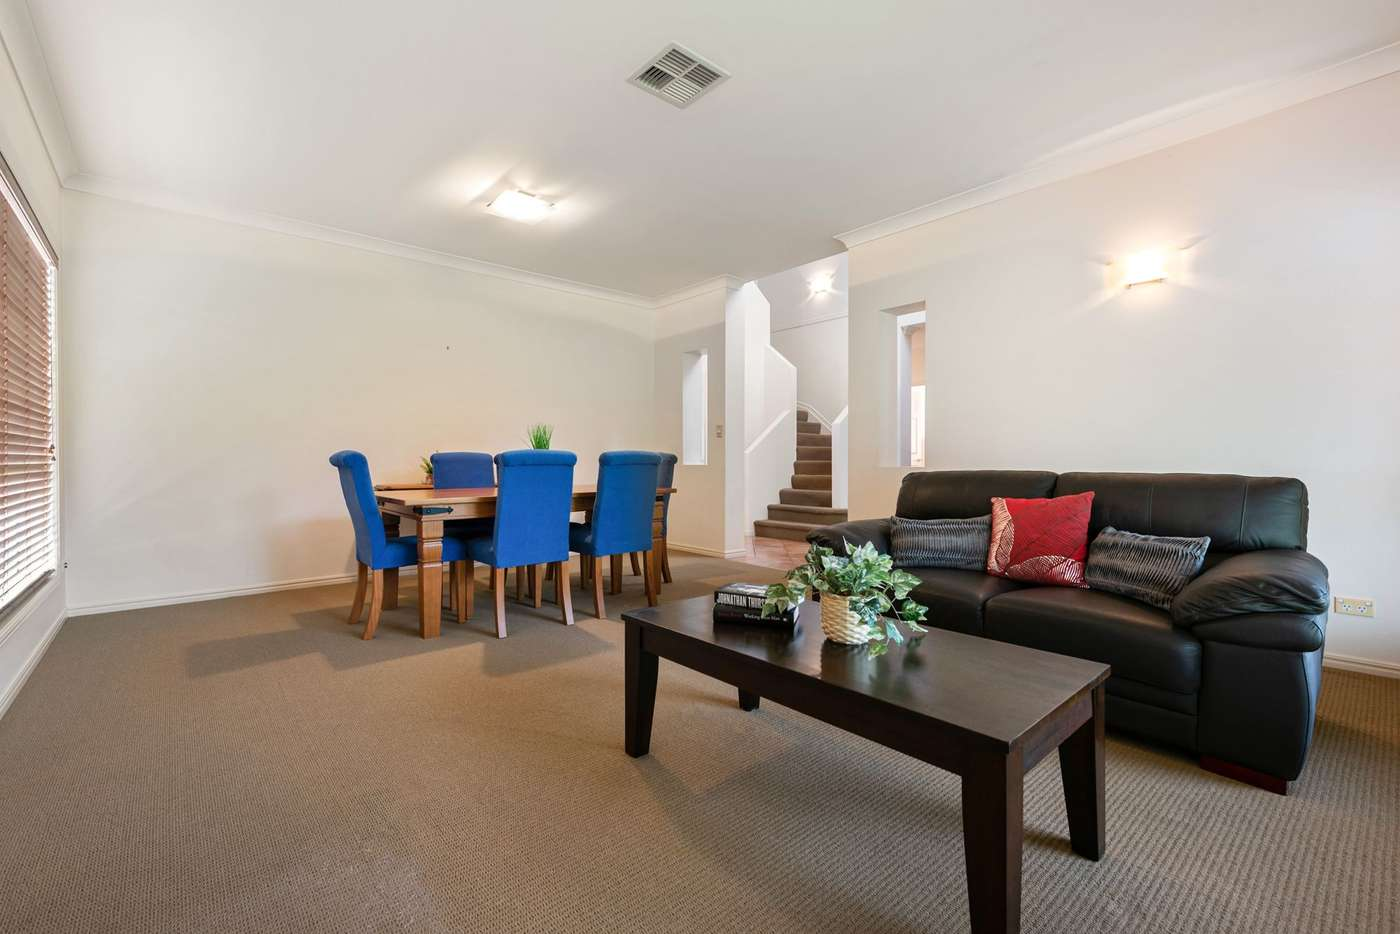 Fifth view of Homely house listing, 39 Sunset Place, Carindale QLD 4152